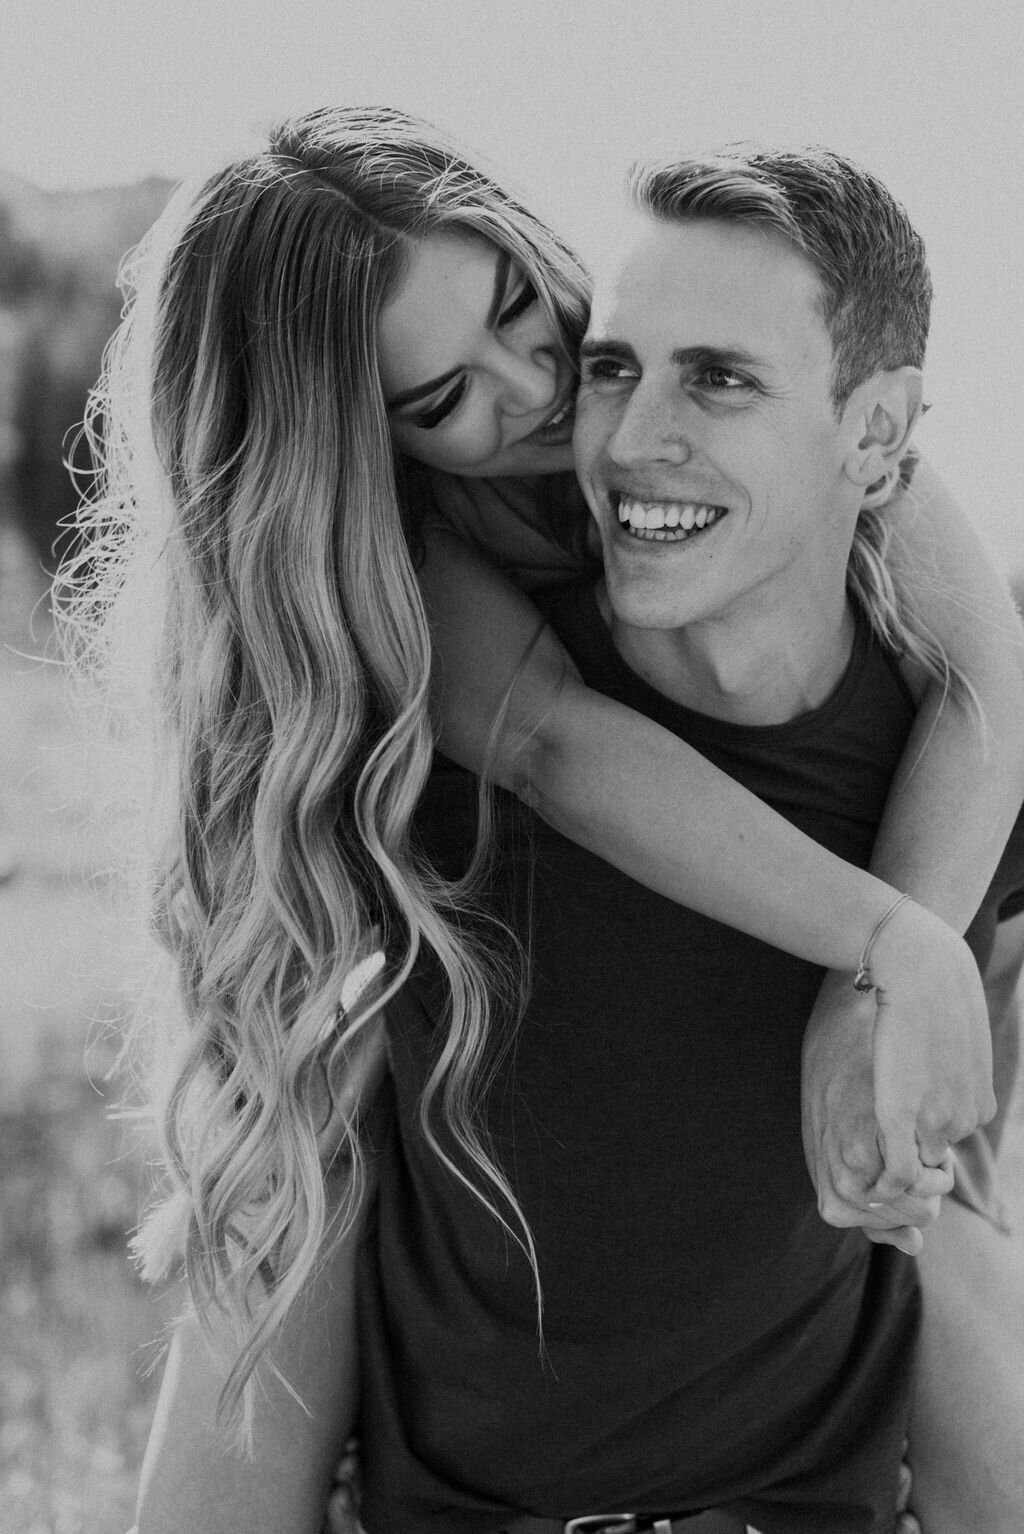 mountain-engagement-session-provo-utah-kyle-and-taylor-1-51.jpg